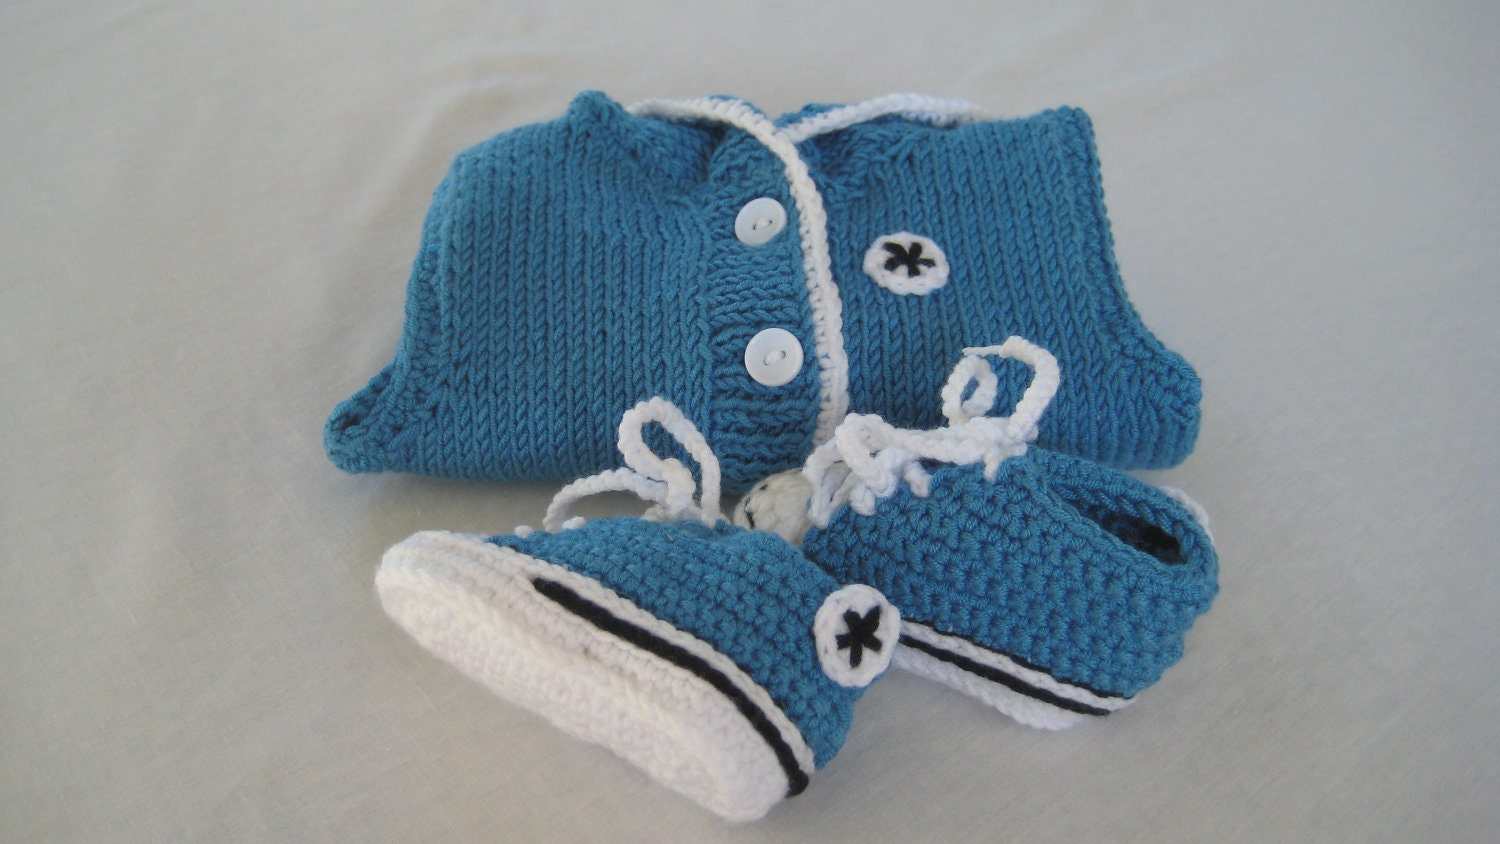 Blue Crochet Converse Baby Booties / Chucks & Blue Hoodie.